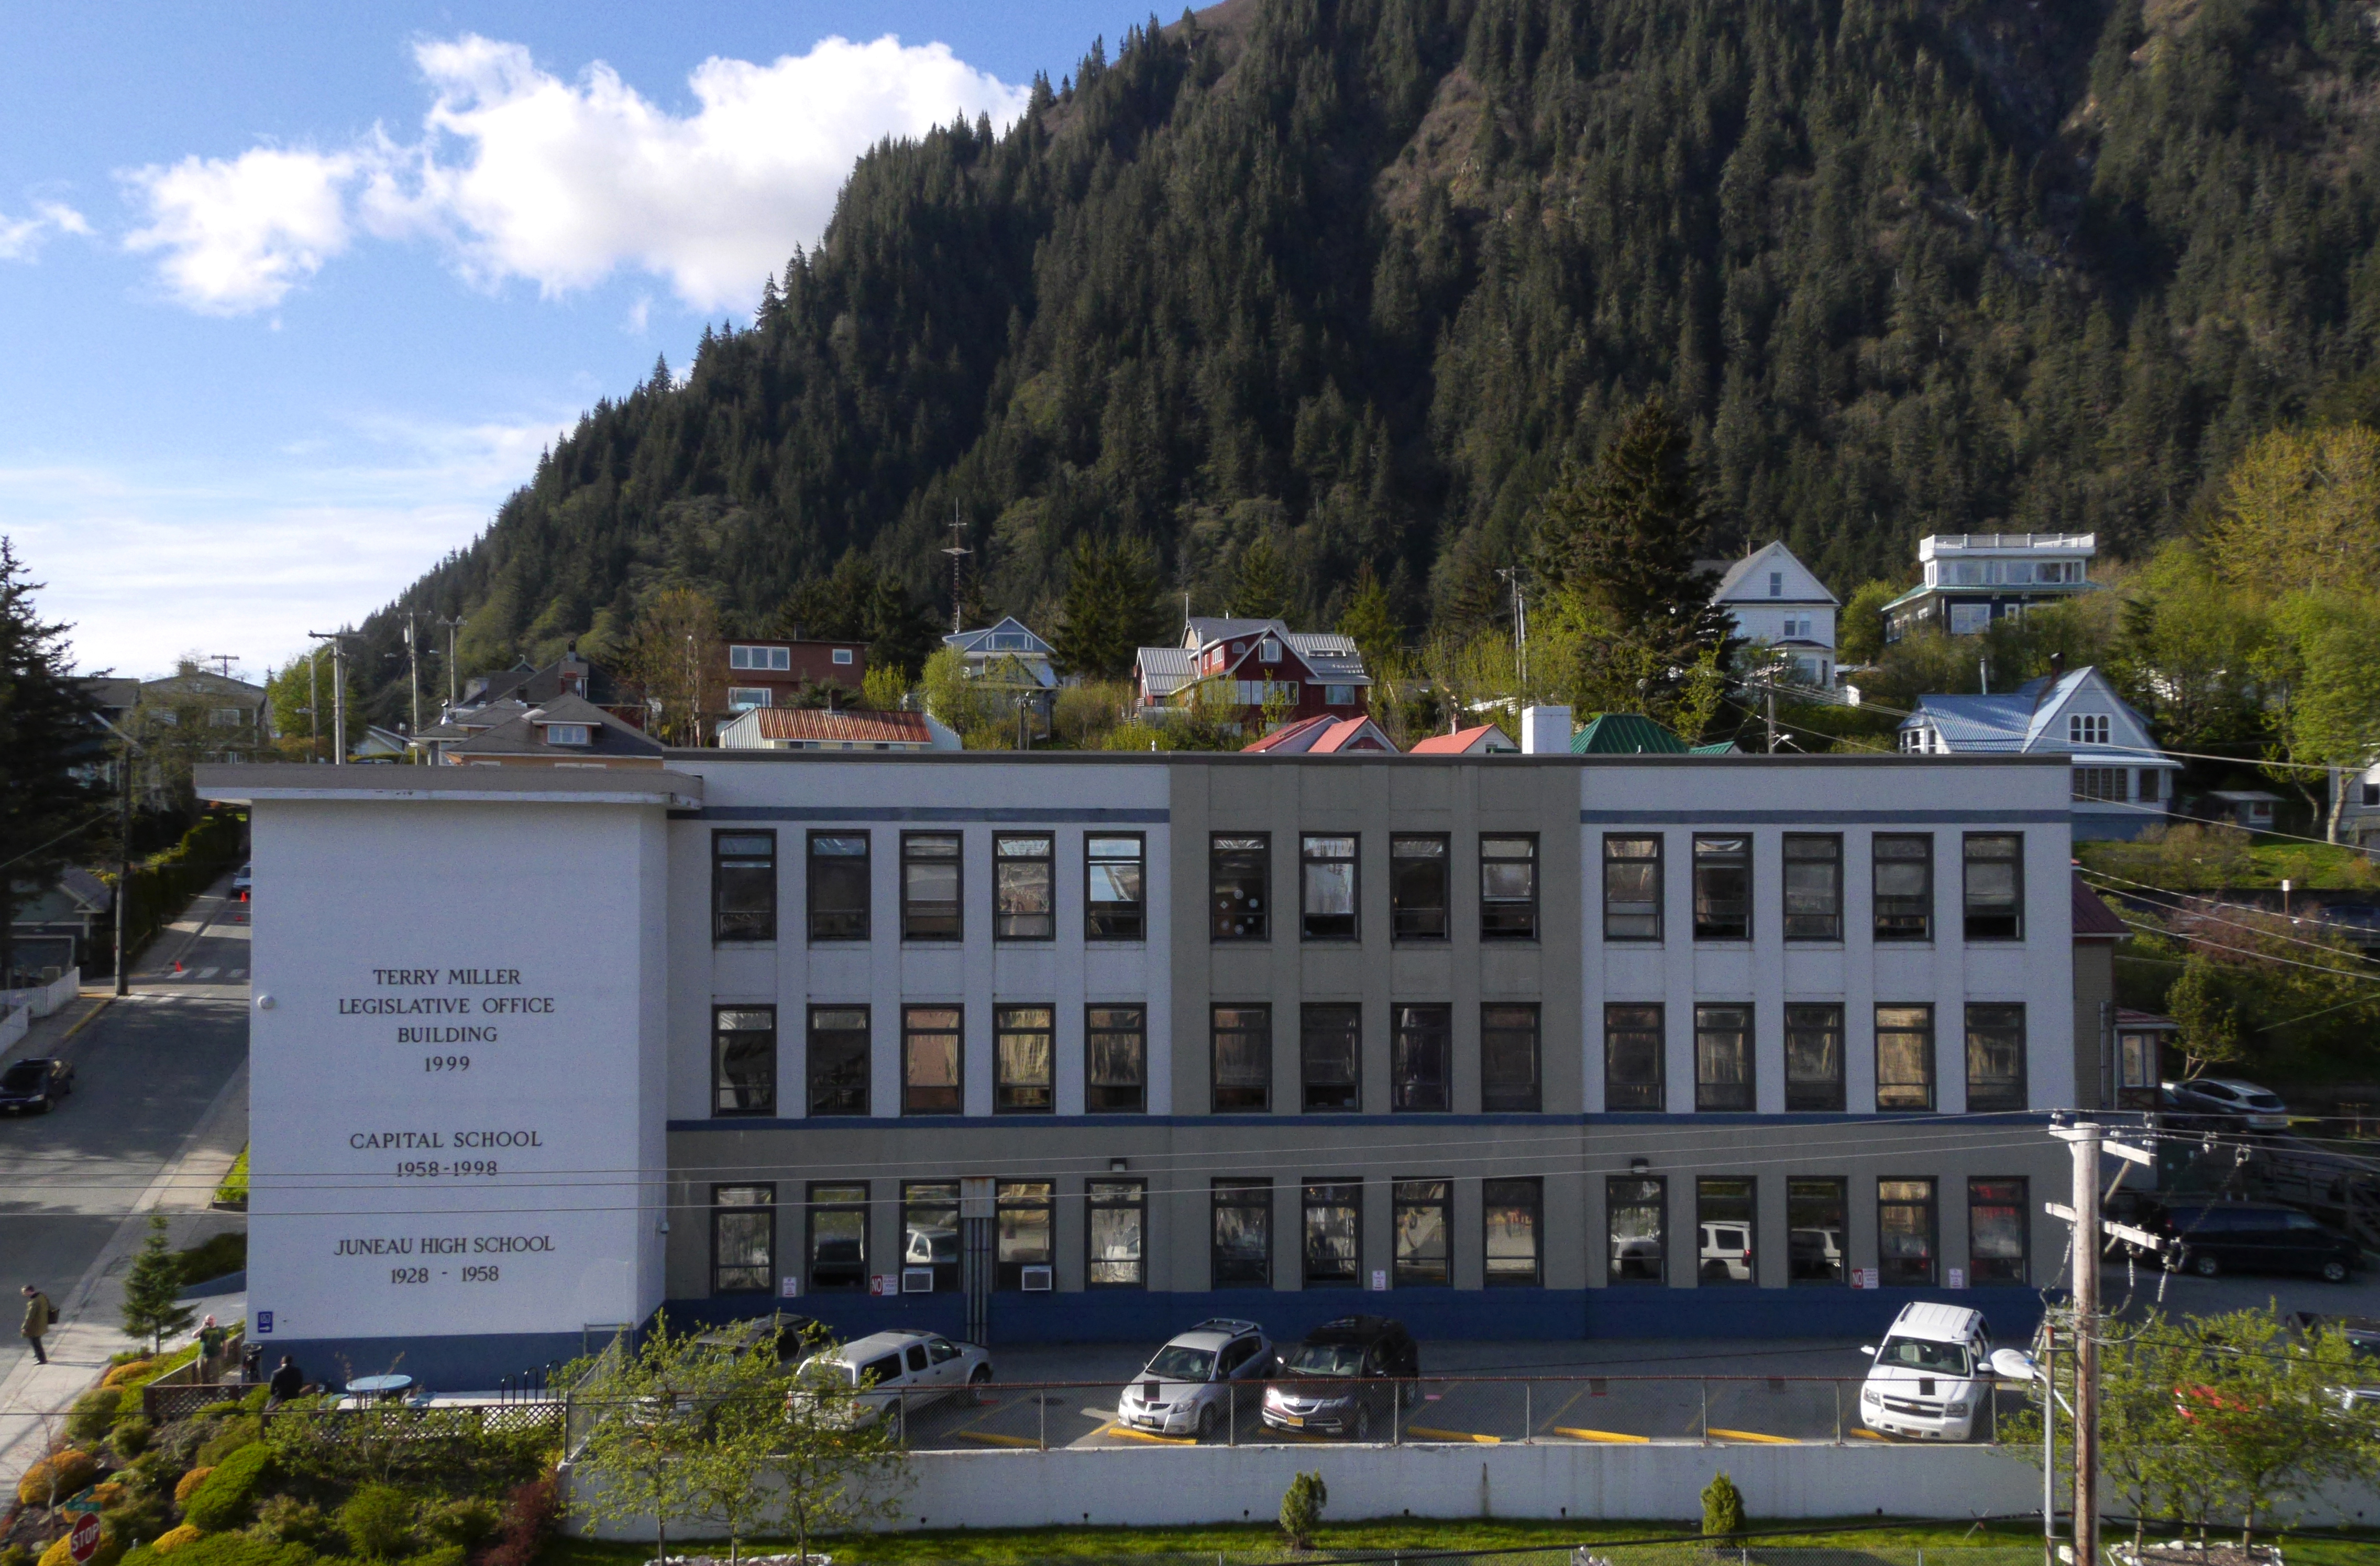 The Terry Miller Legislative Office Building, April 20, 2016; the temporary location for the Alaska House and Senate for the 2016 extended legislative session.